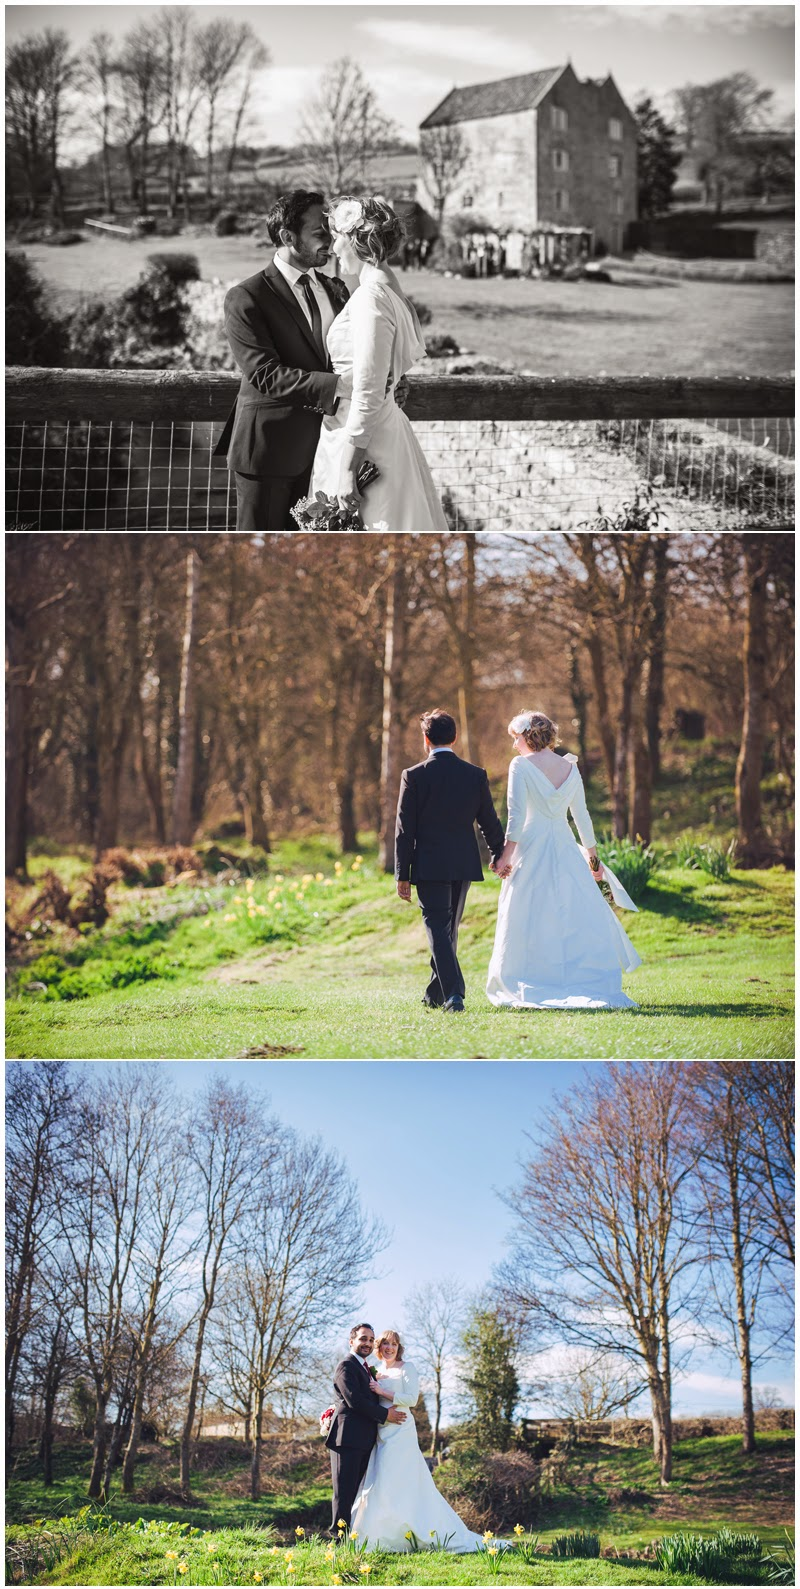 Wedding photography at The Watermill, Priston Mill